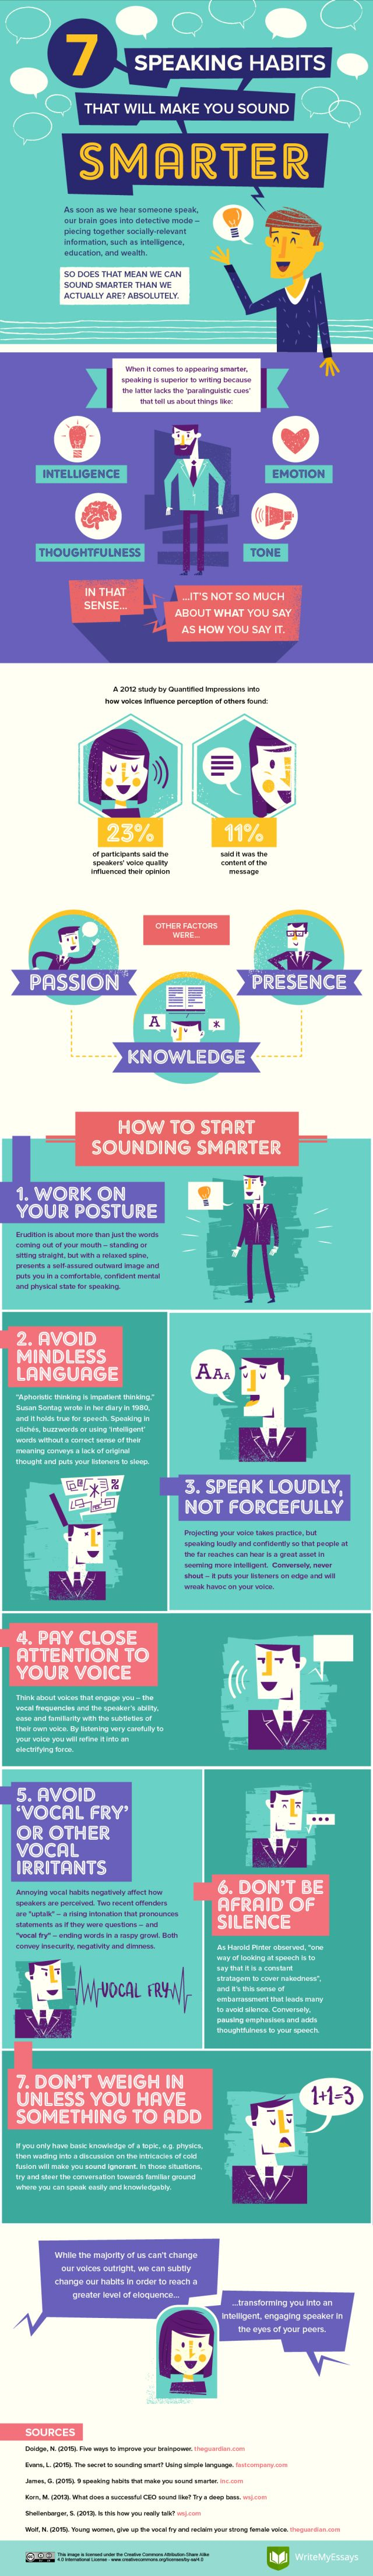 7 Speaking Habits That Will Make You Sound Smarter #Infographic